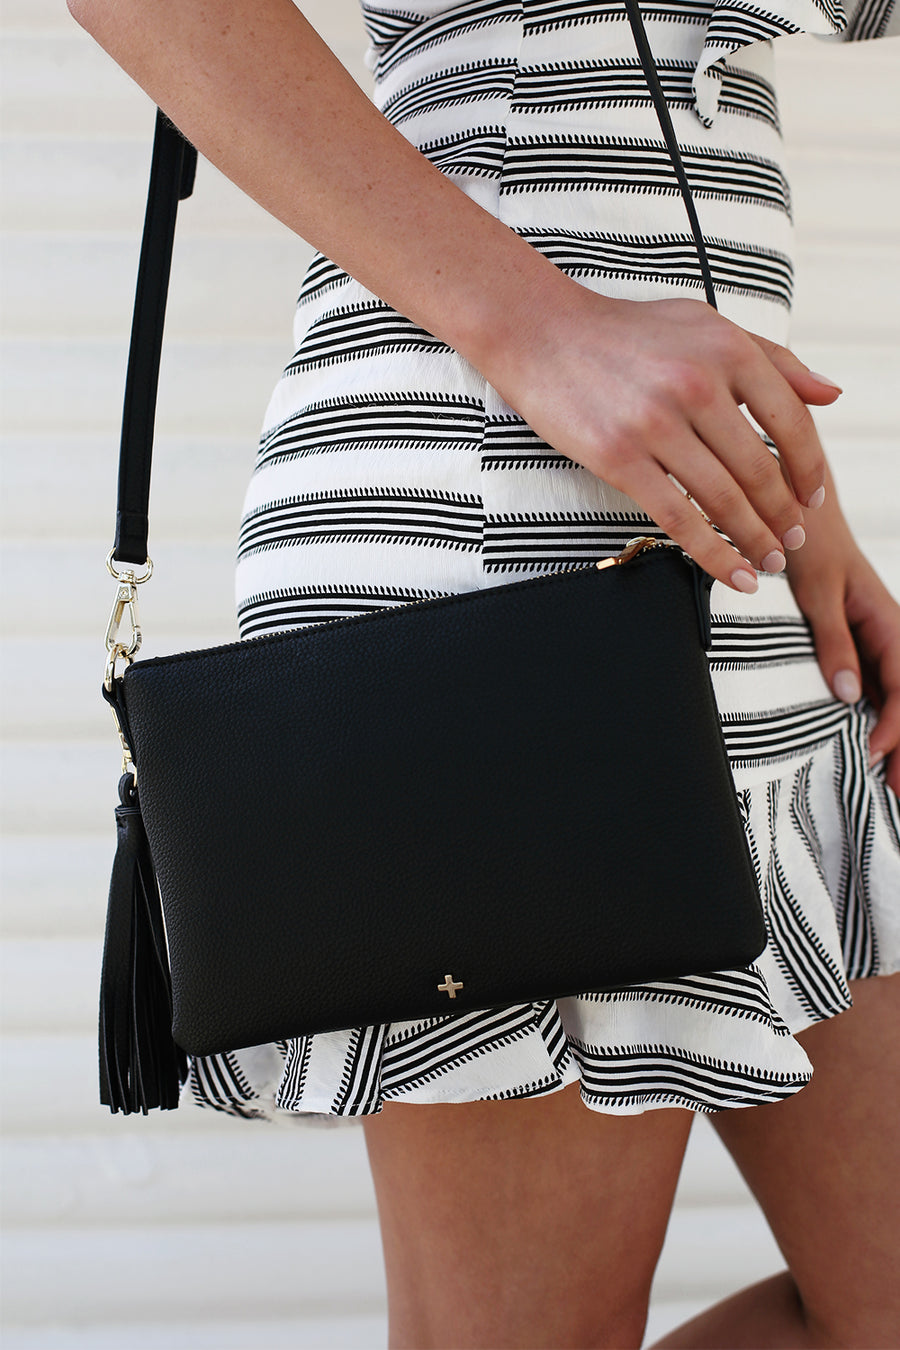 Kourtney Clutch in Black